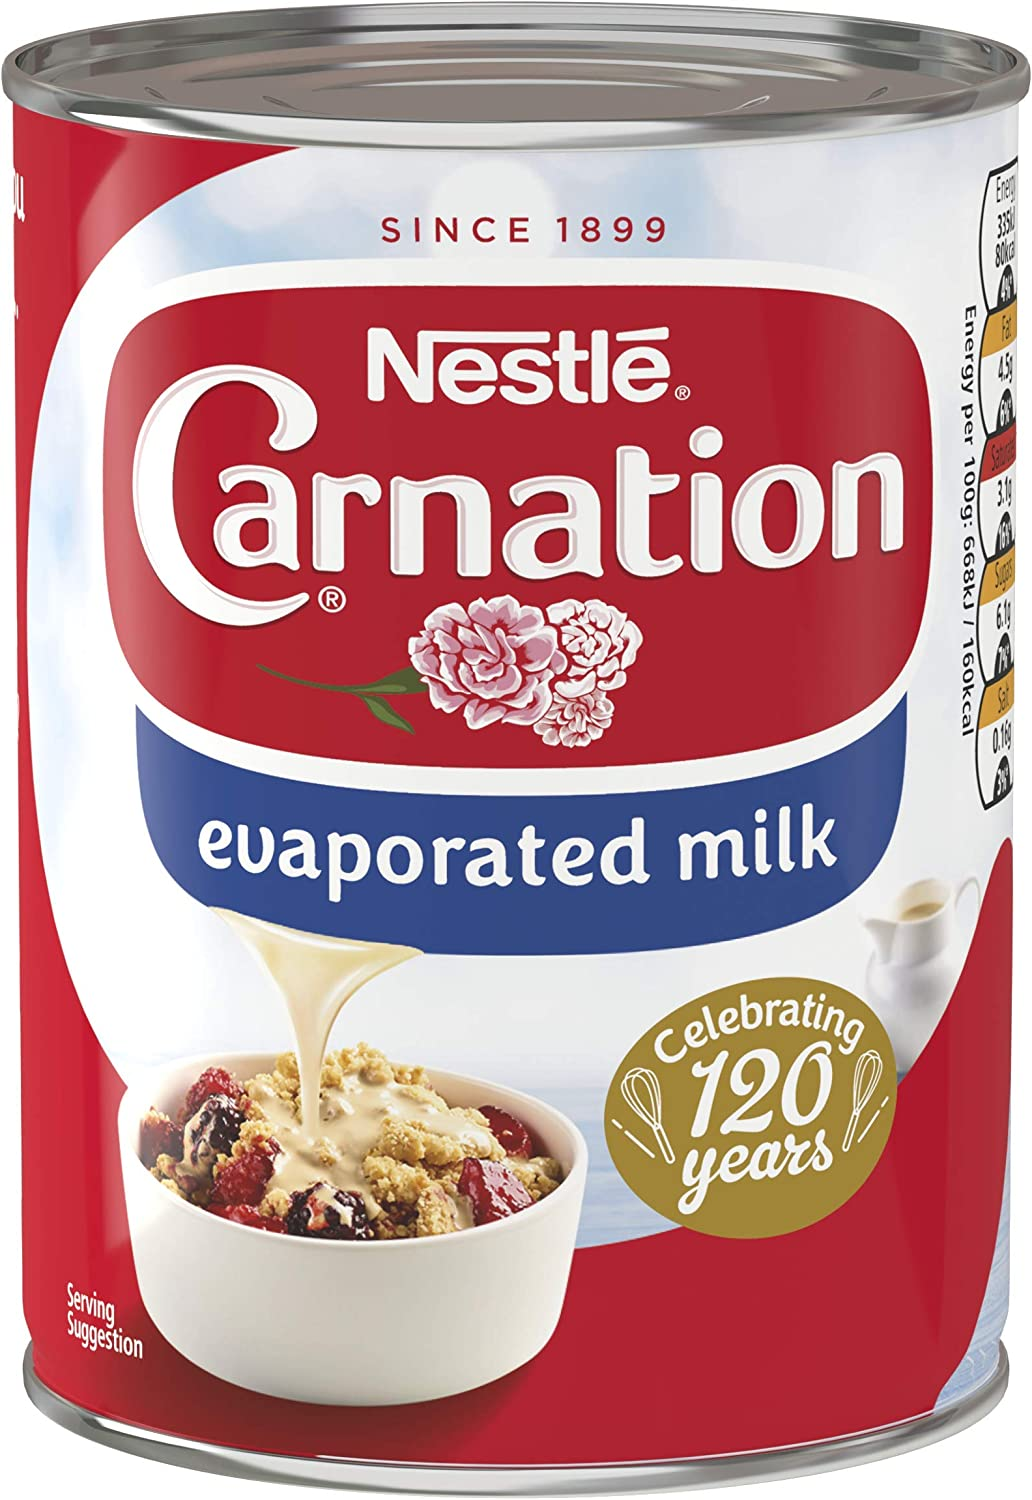 Nestlé Carnation Evaporated Milk, 410 g (Pack of 12): Amazon.co.uk ...